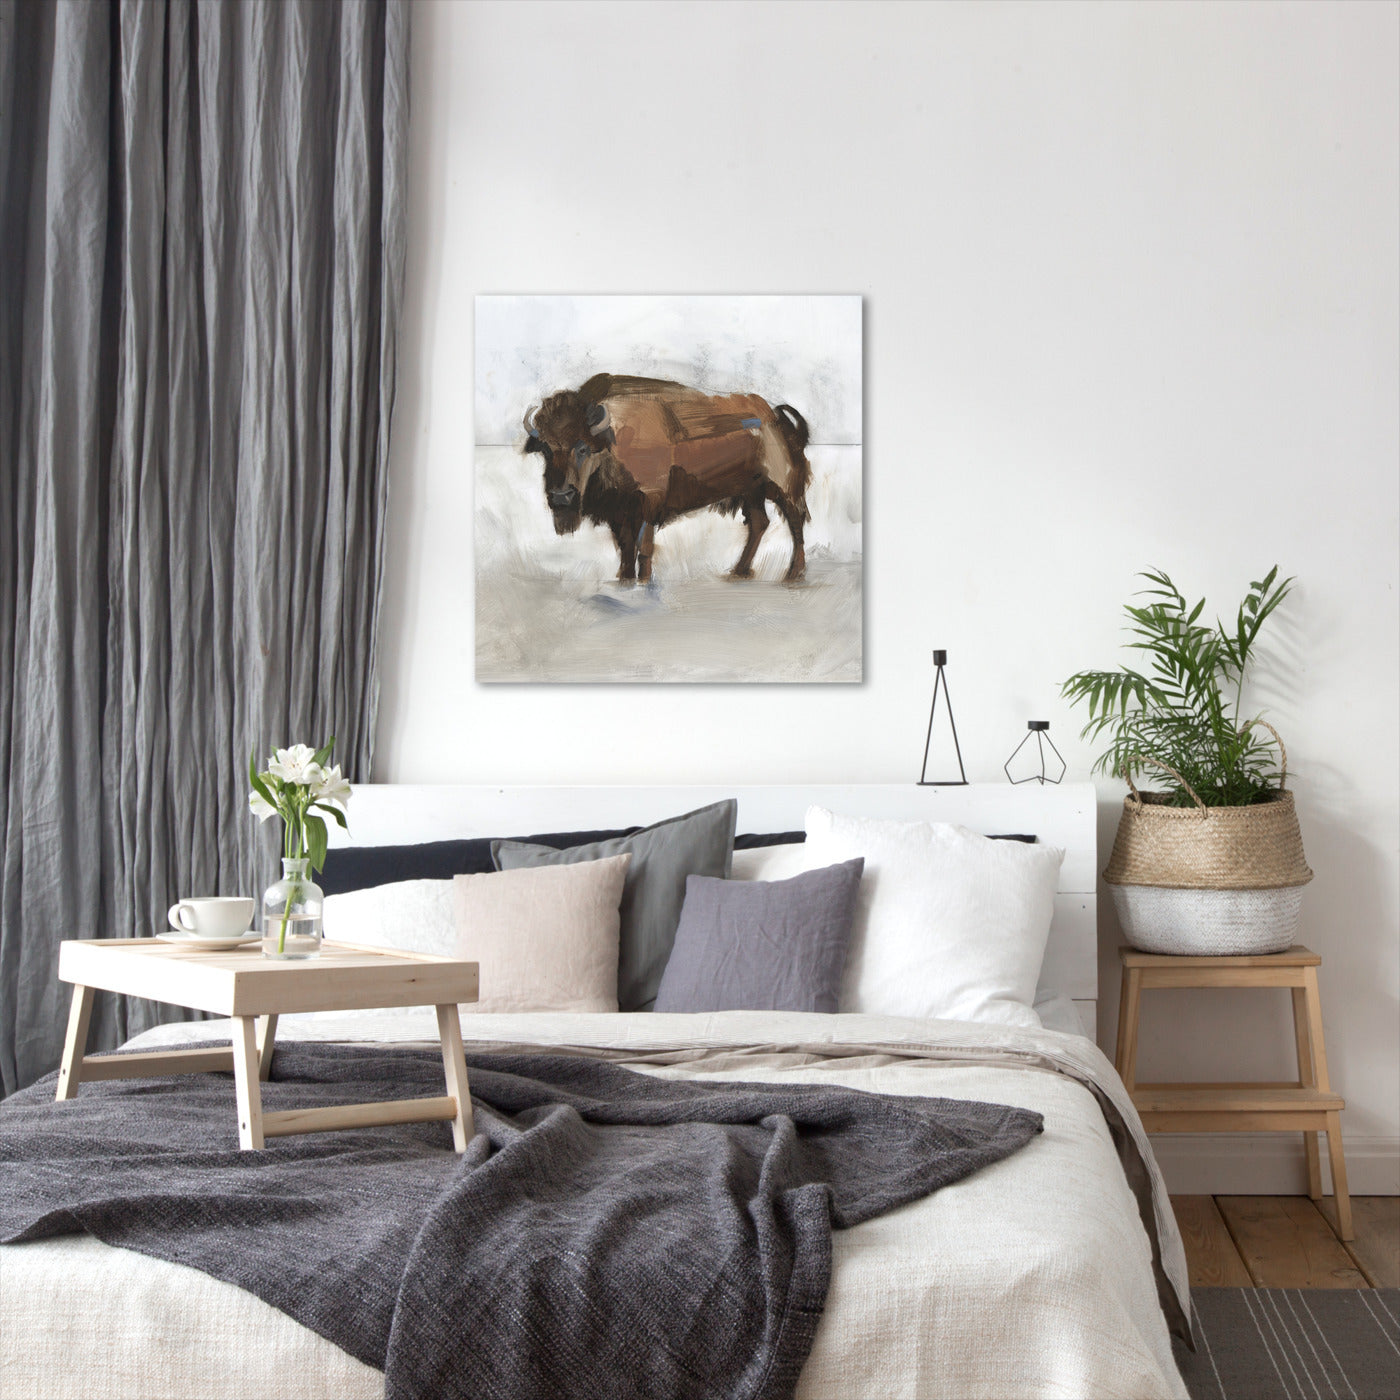 Lodge Guardian II by Jacob Green by World Art Group - Wrapped Canvas - Wrapped Canvas - Americanflat